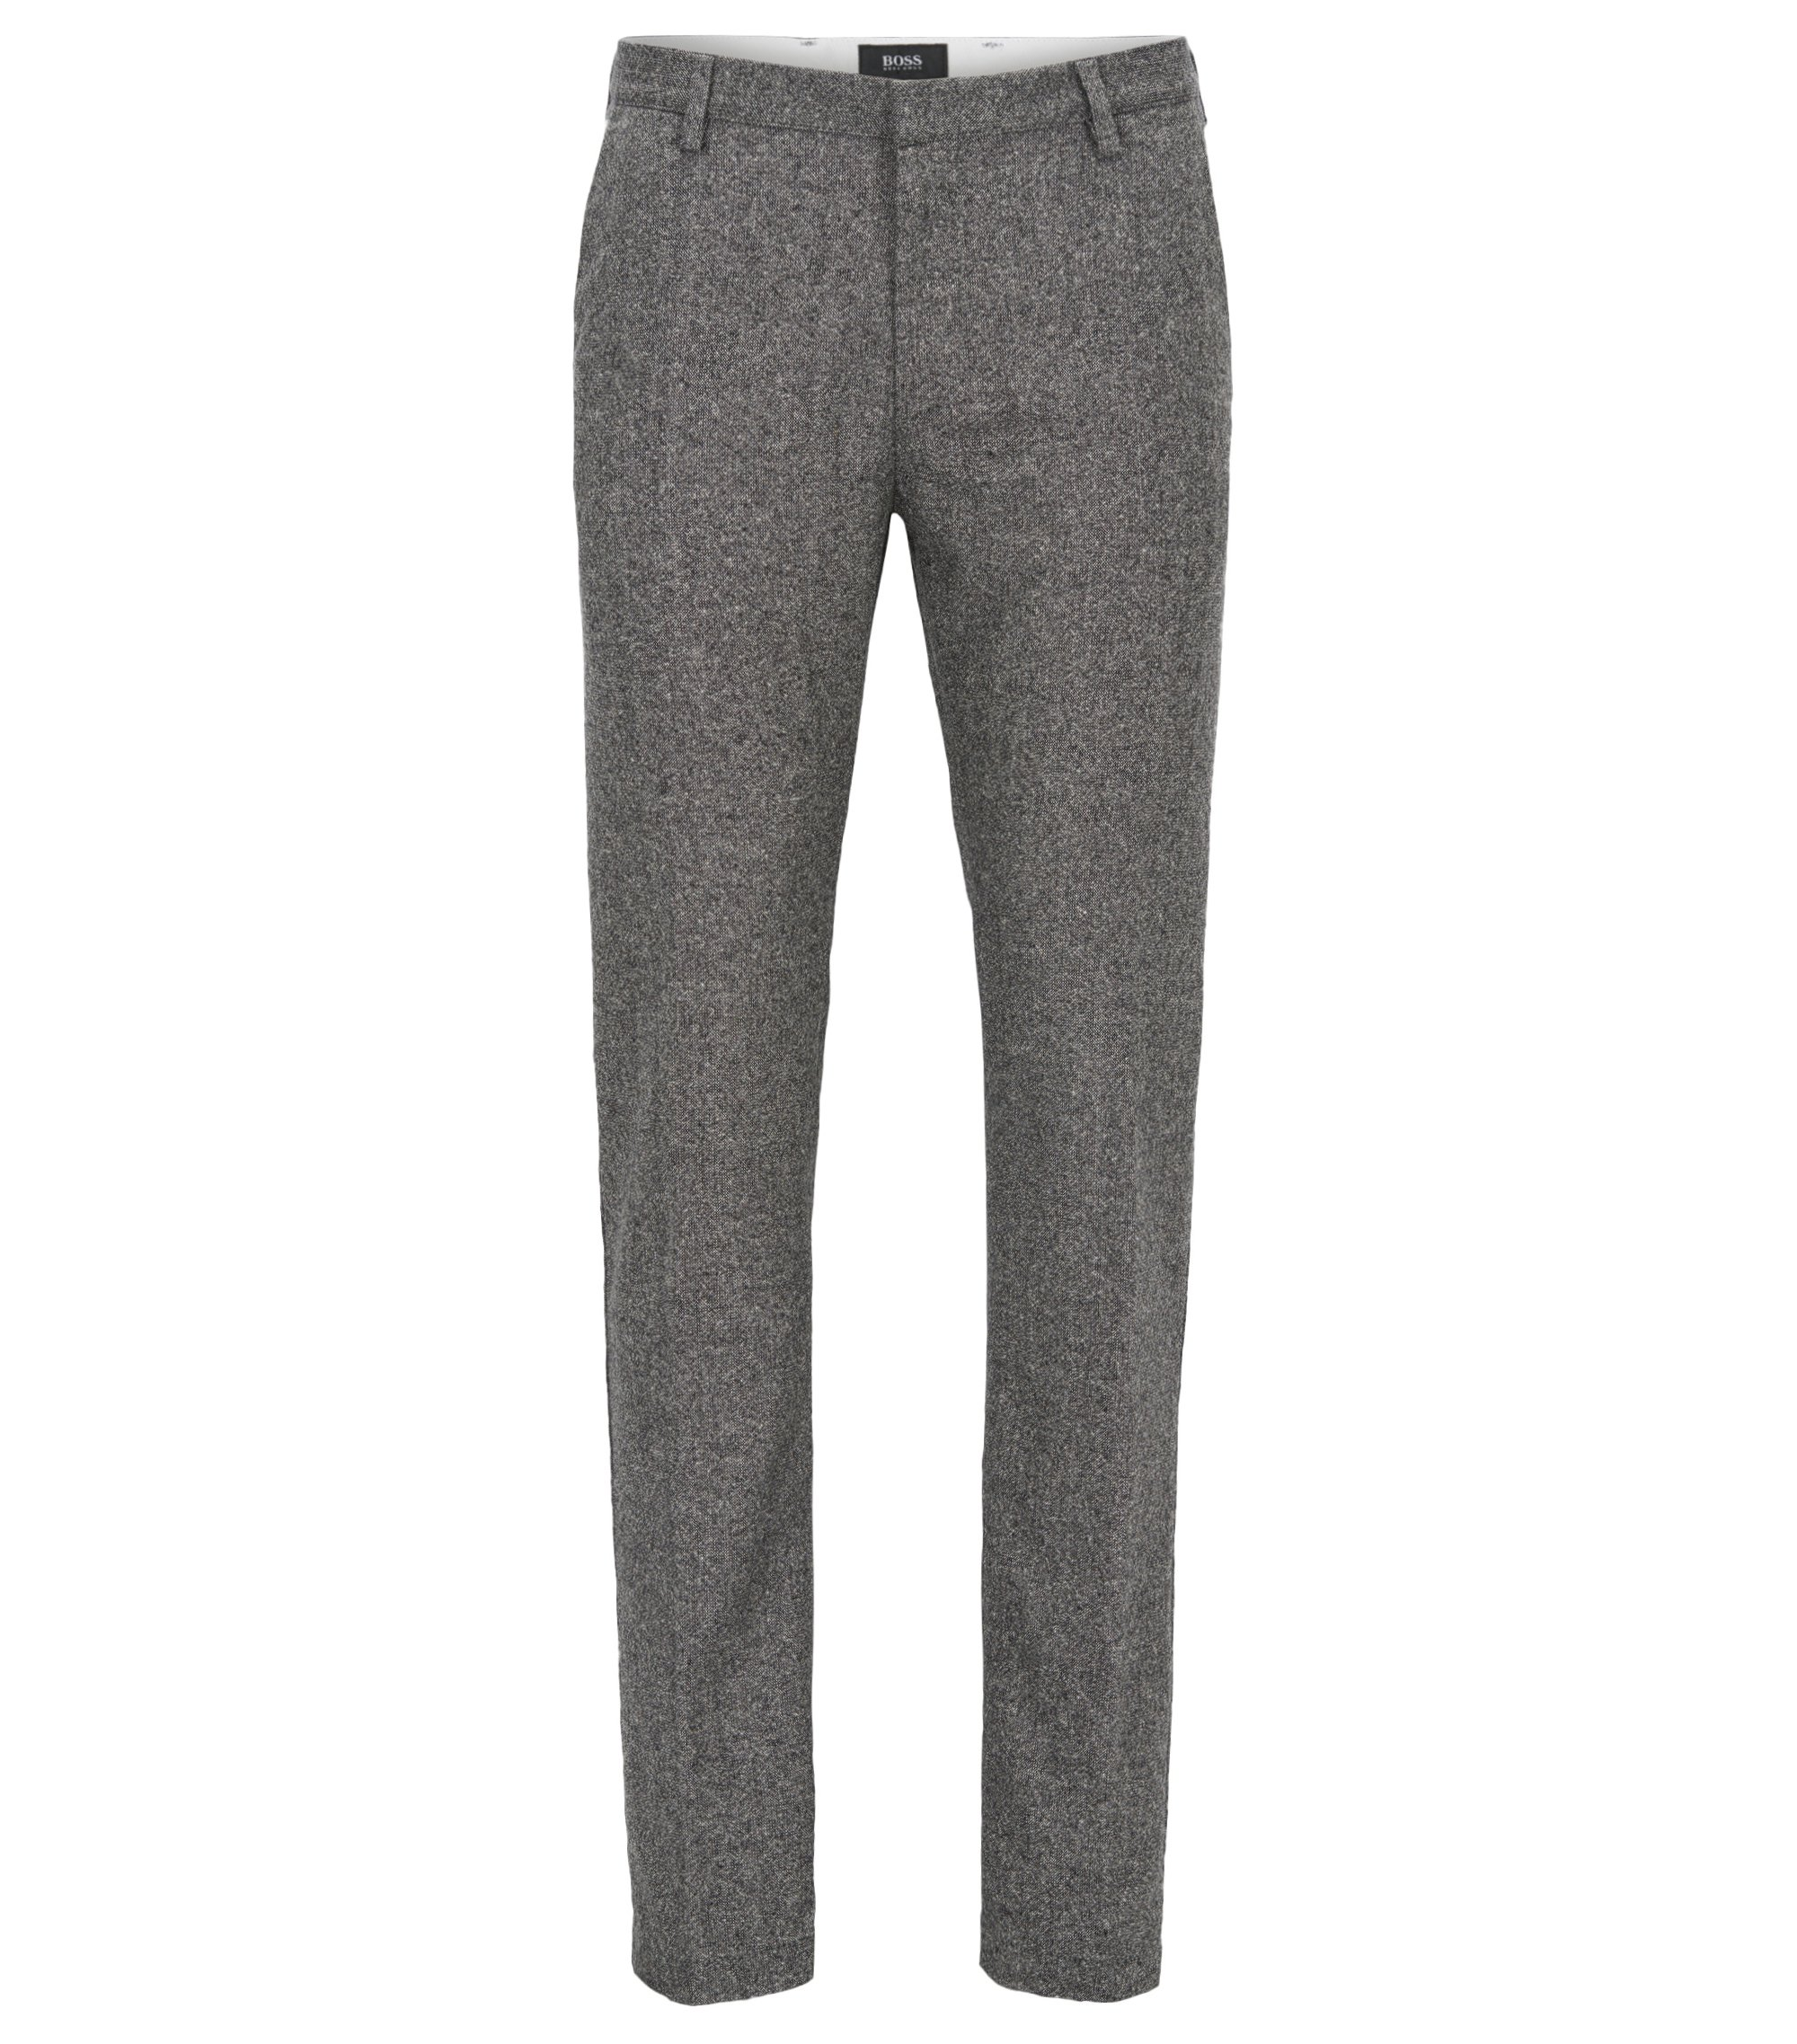 Virgin Wool Blend Pant, Slim Fit | Rice W, Open Grey